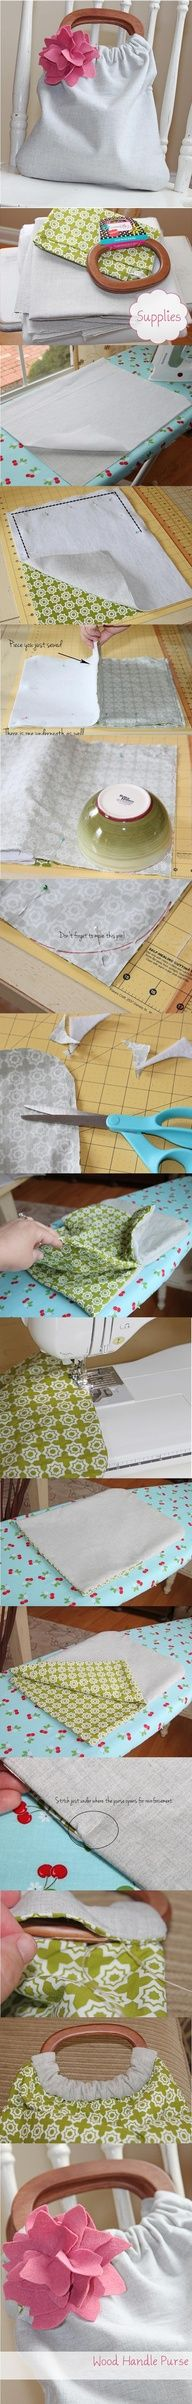 DIY: Bag Made ​​With Wooden Handles And Fabric - inspiring picture on Joyzz.com